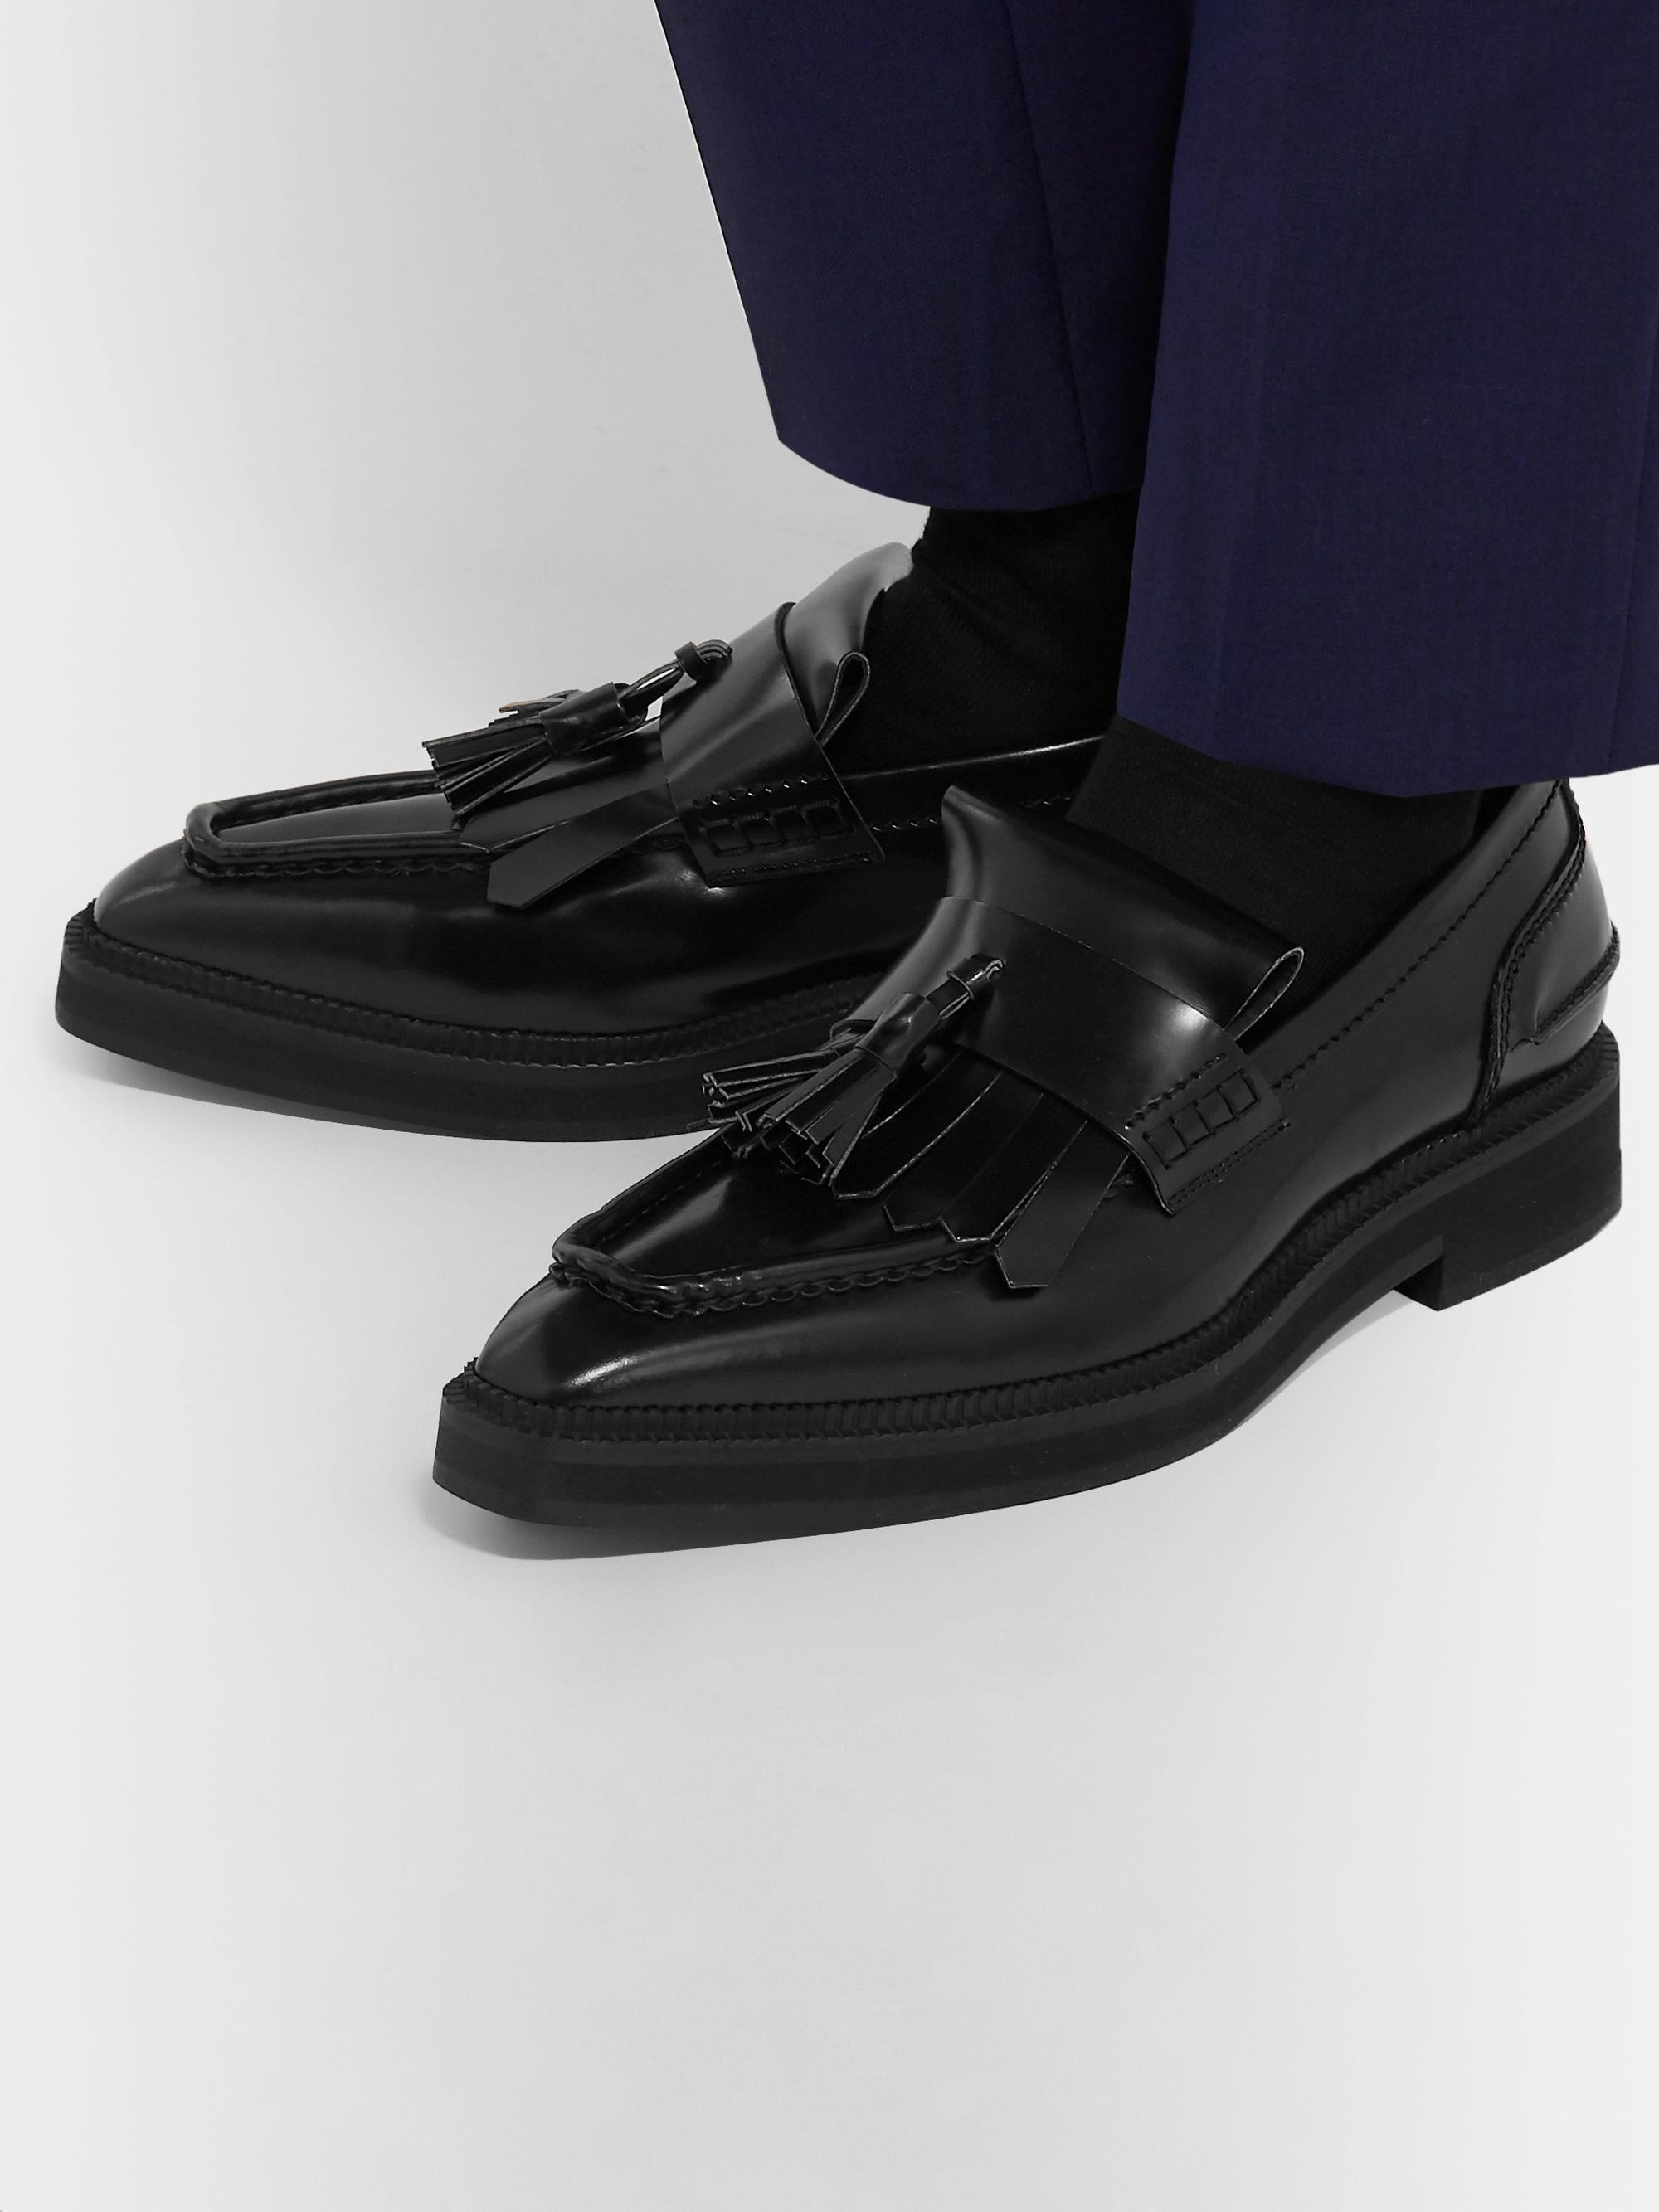 Alexander McQueen Spazzolato Leather Tasselled Loafers